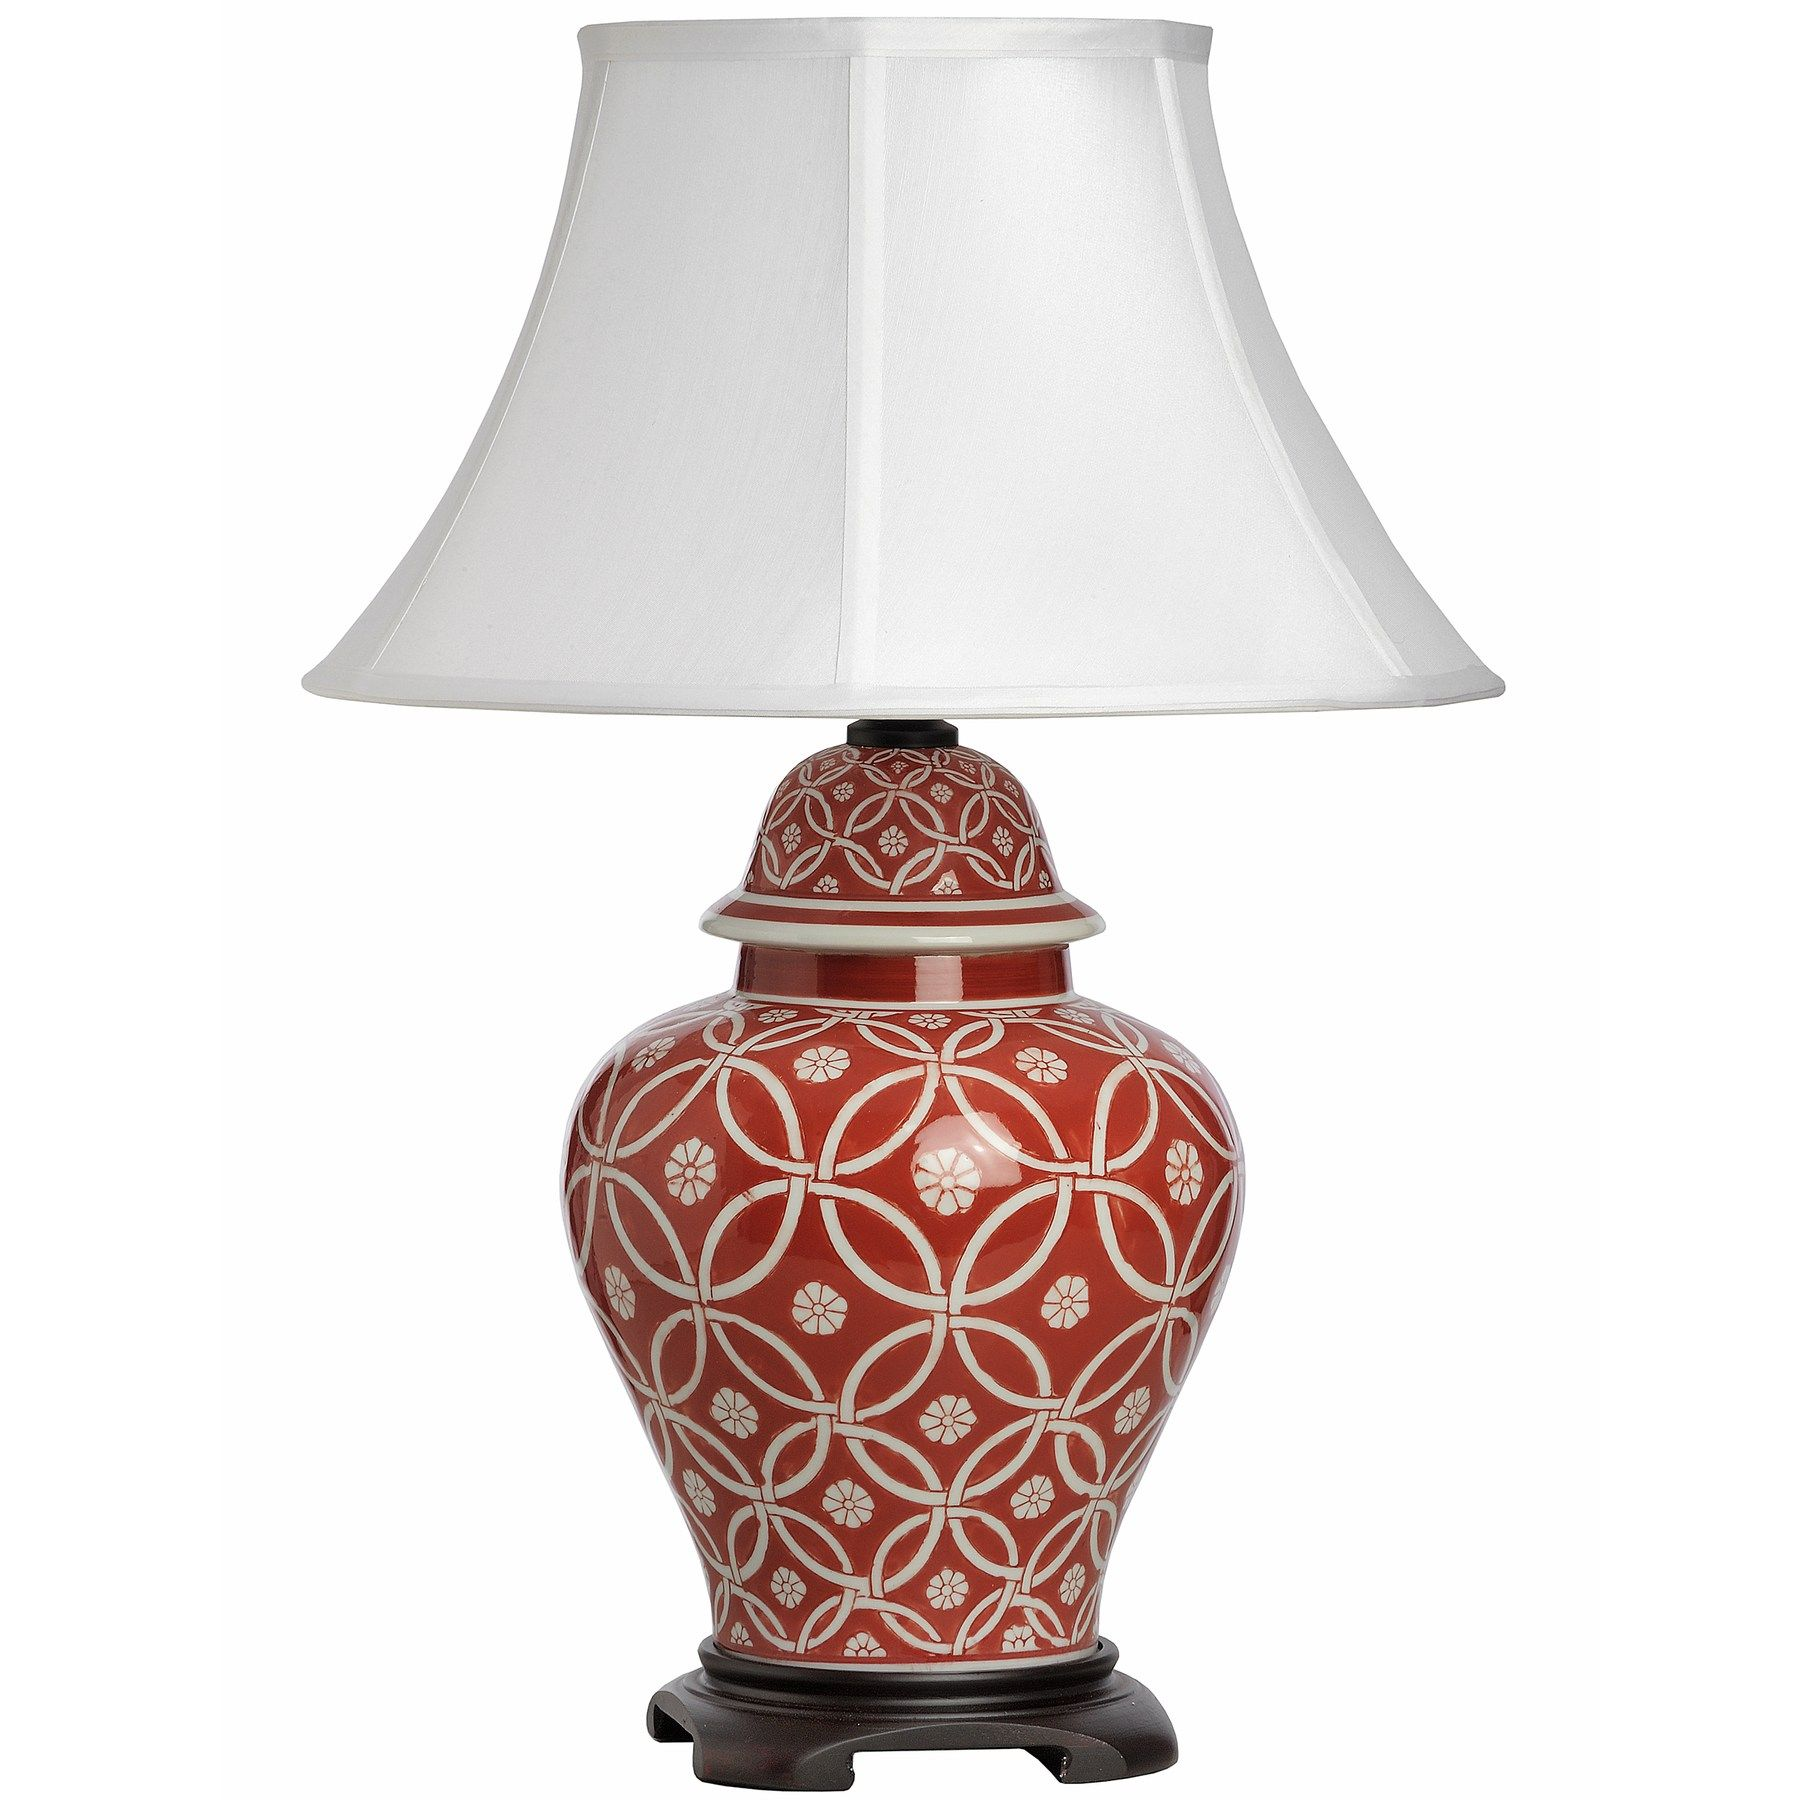 Athos White on Red Patterned Ceramic Table Lamp | Lighting ...